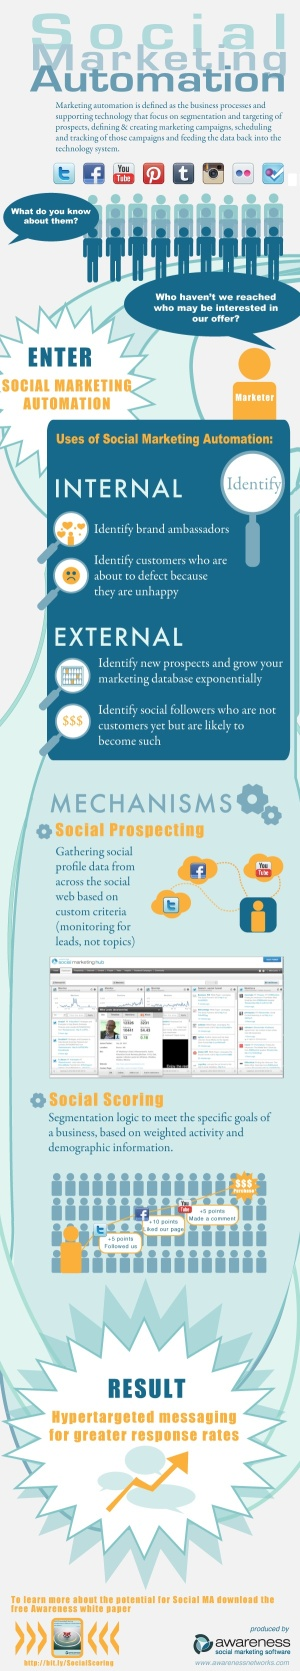 Social marketing automation - What do you know about it